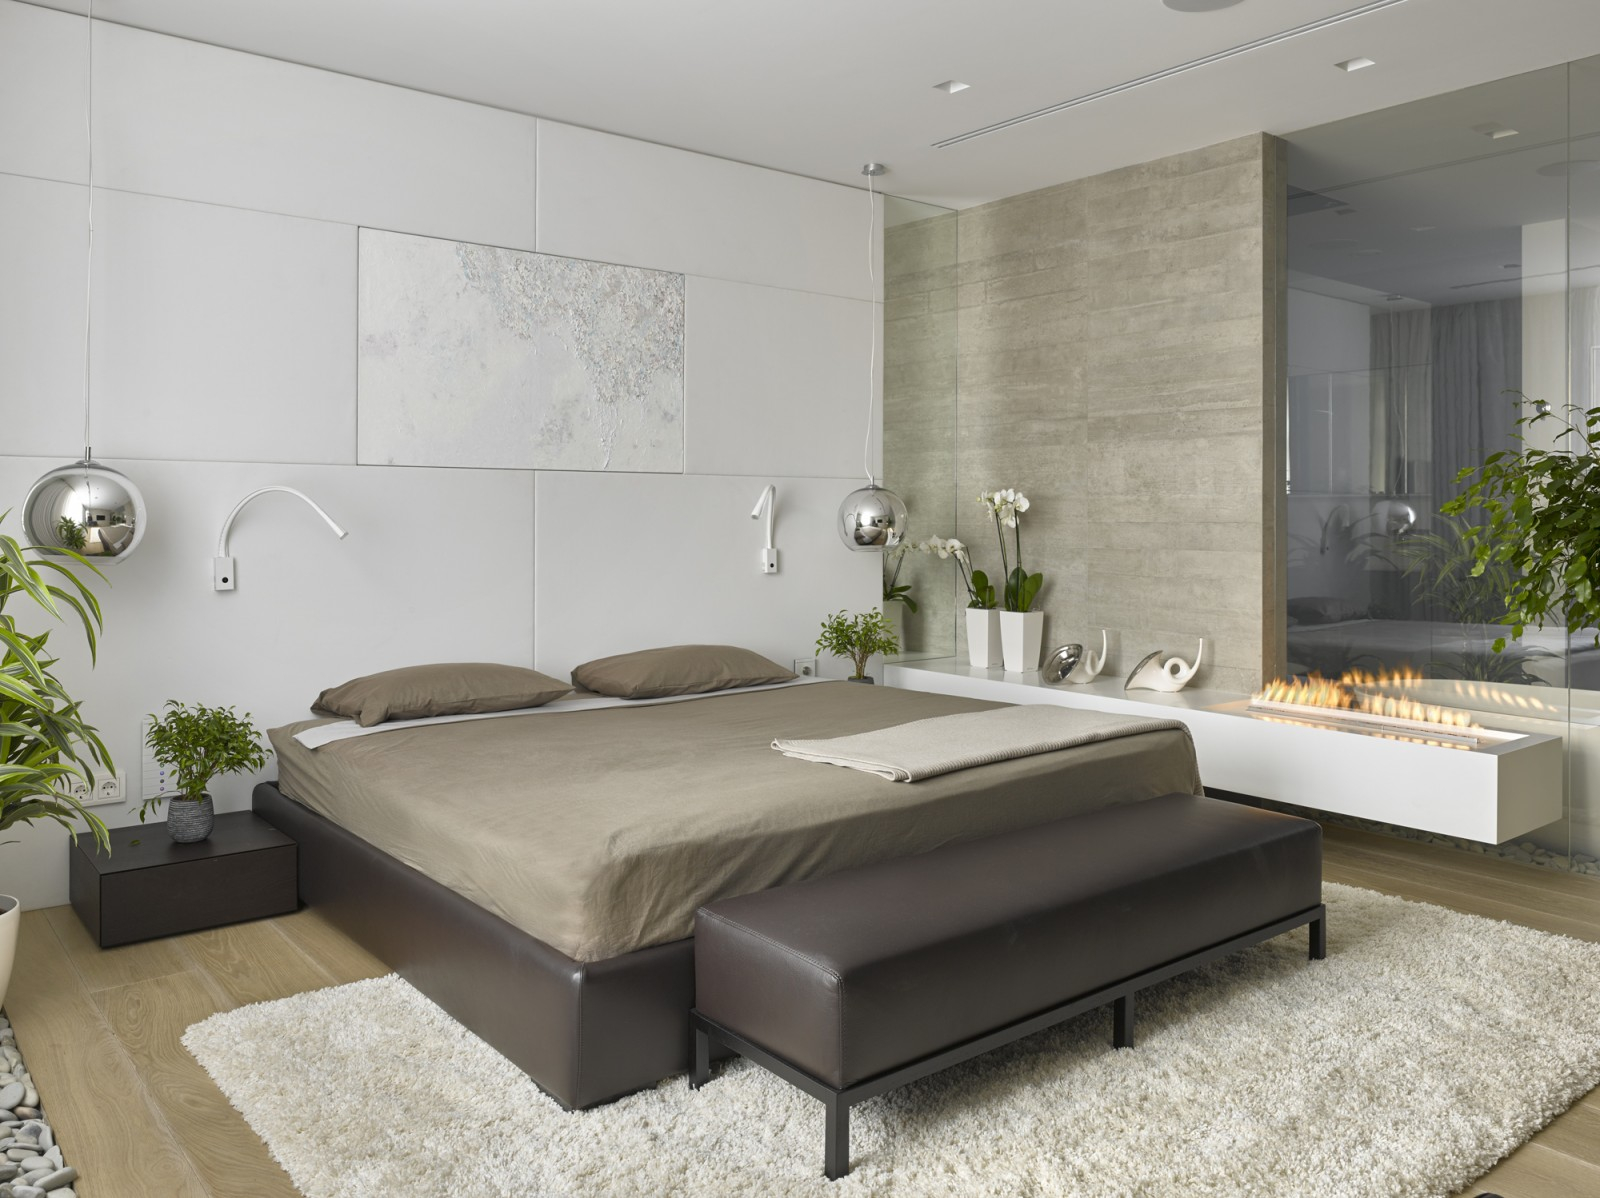 20 Best Small Modern Bedroom Ideas Architecture Beast intended for Modern Small Bedroom Ideas